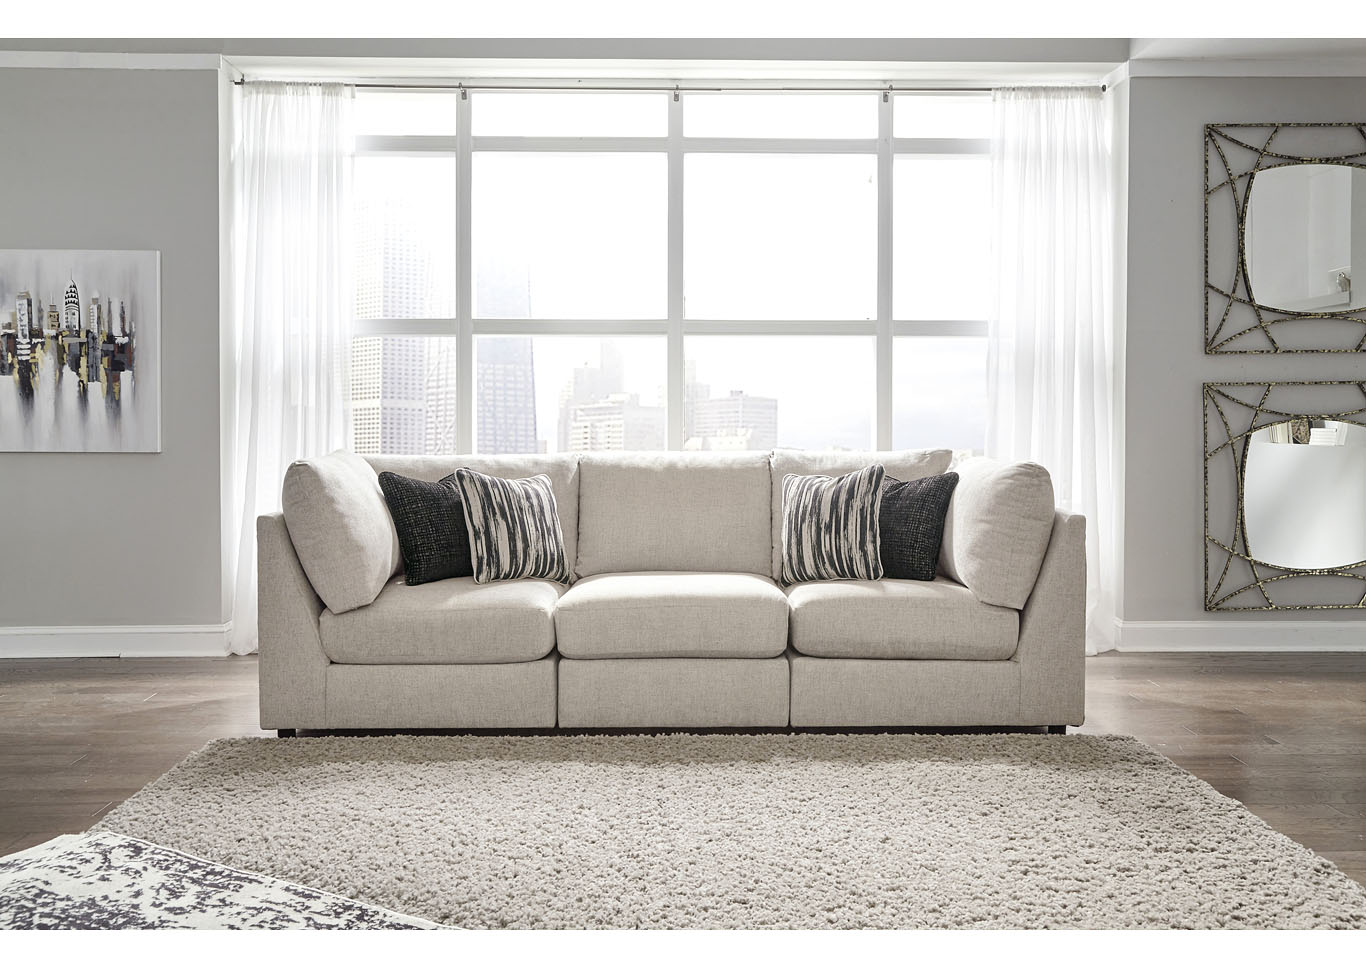 Kellway Bisque 3 Piece Sectional,Signature Design By Ashley